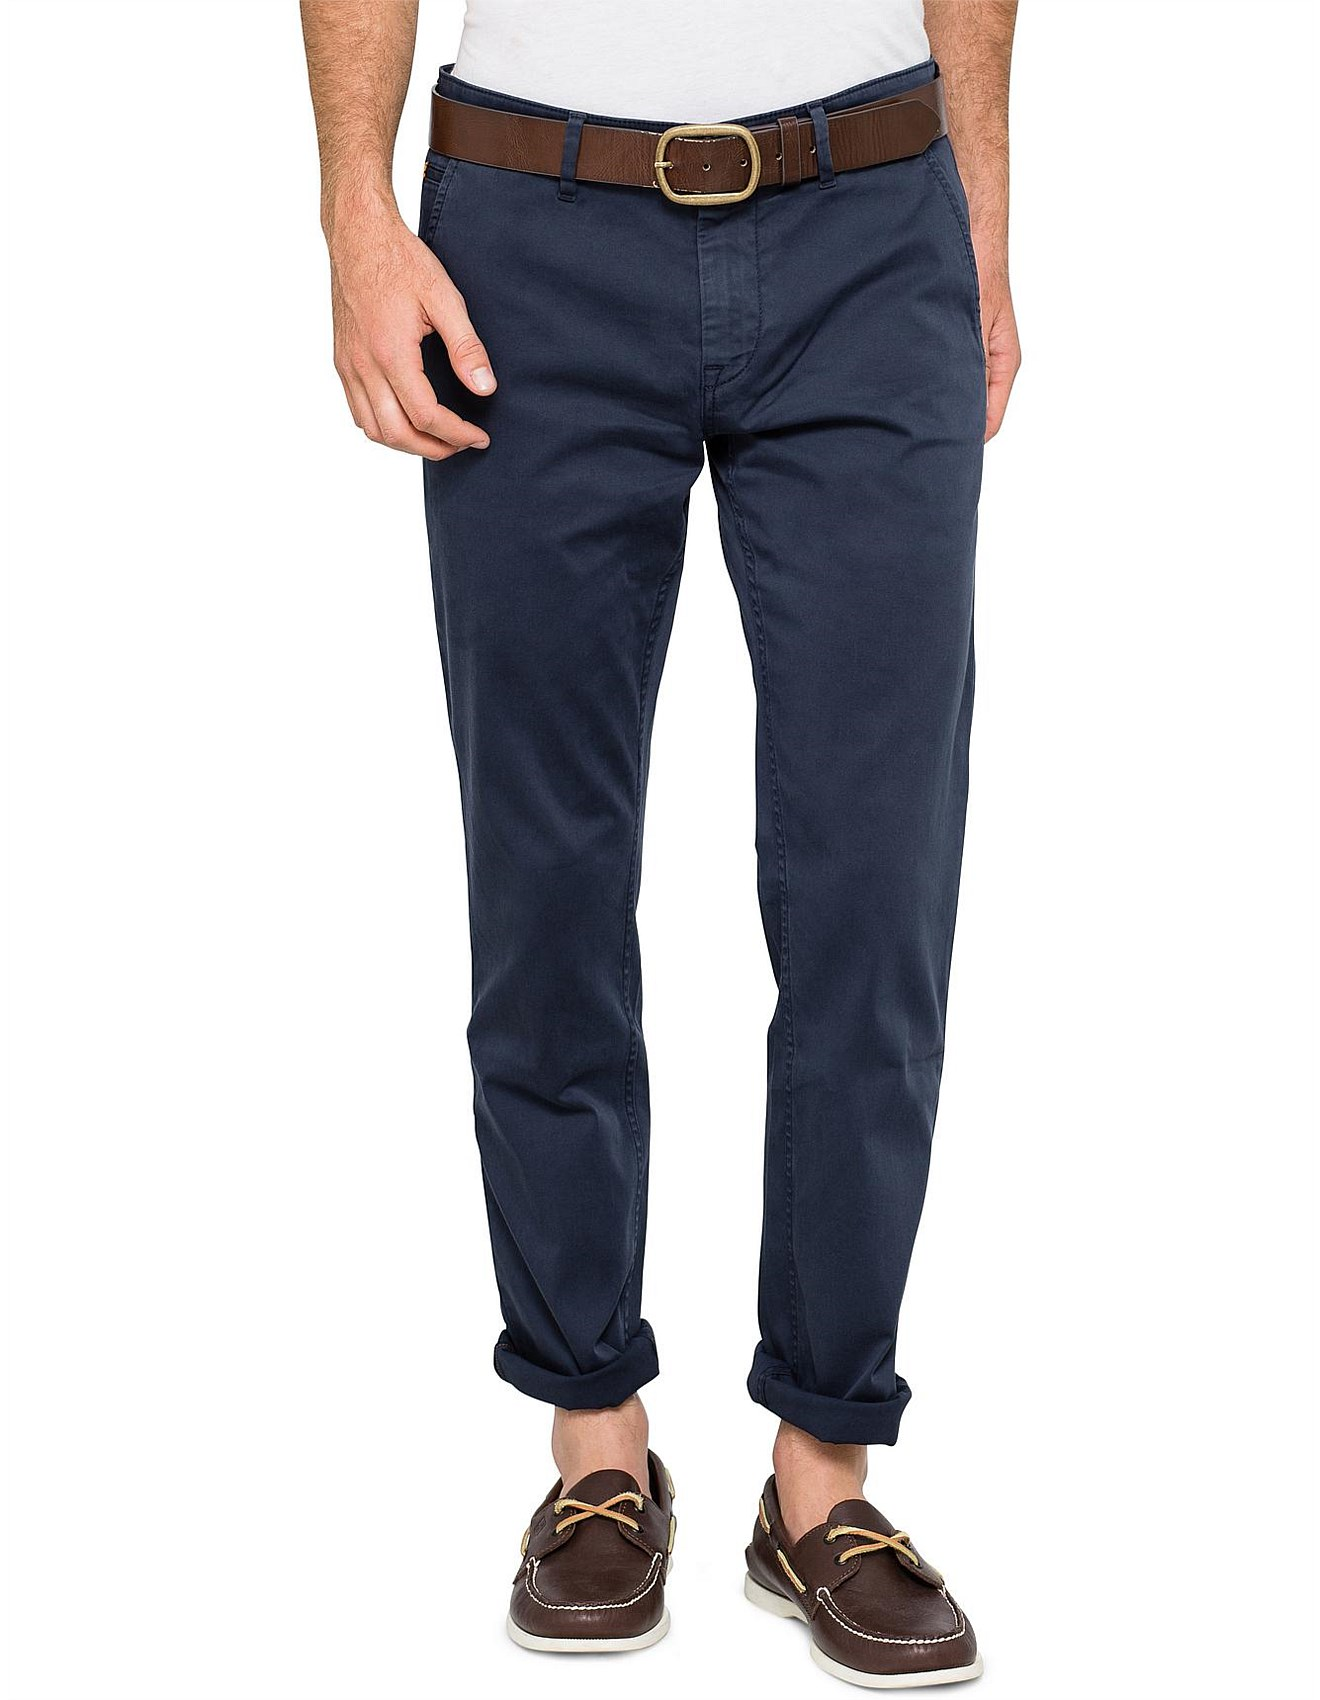 buying now fashionablestyle choose authentic Schino Slim-fit basic cotton chino pant